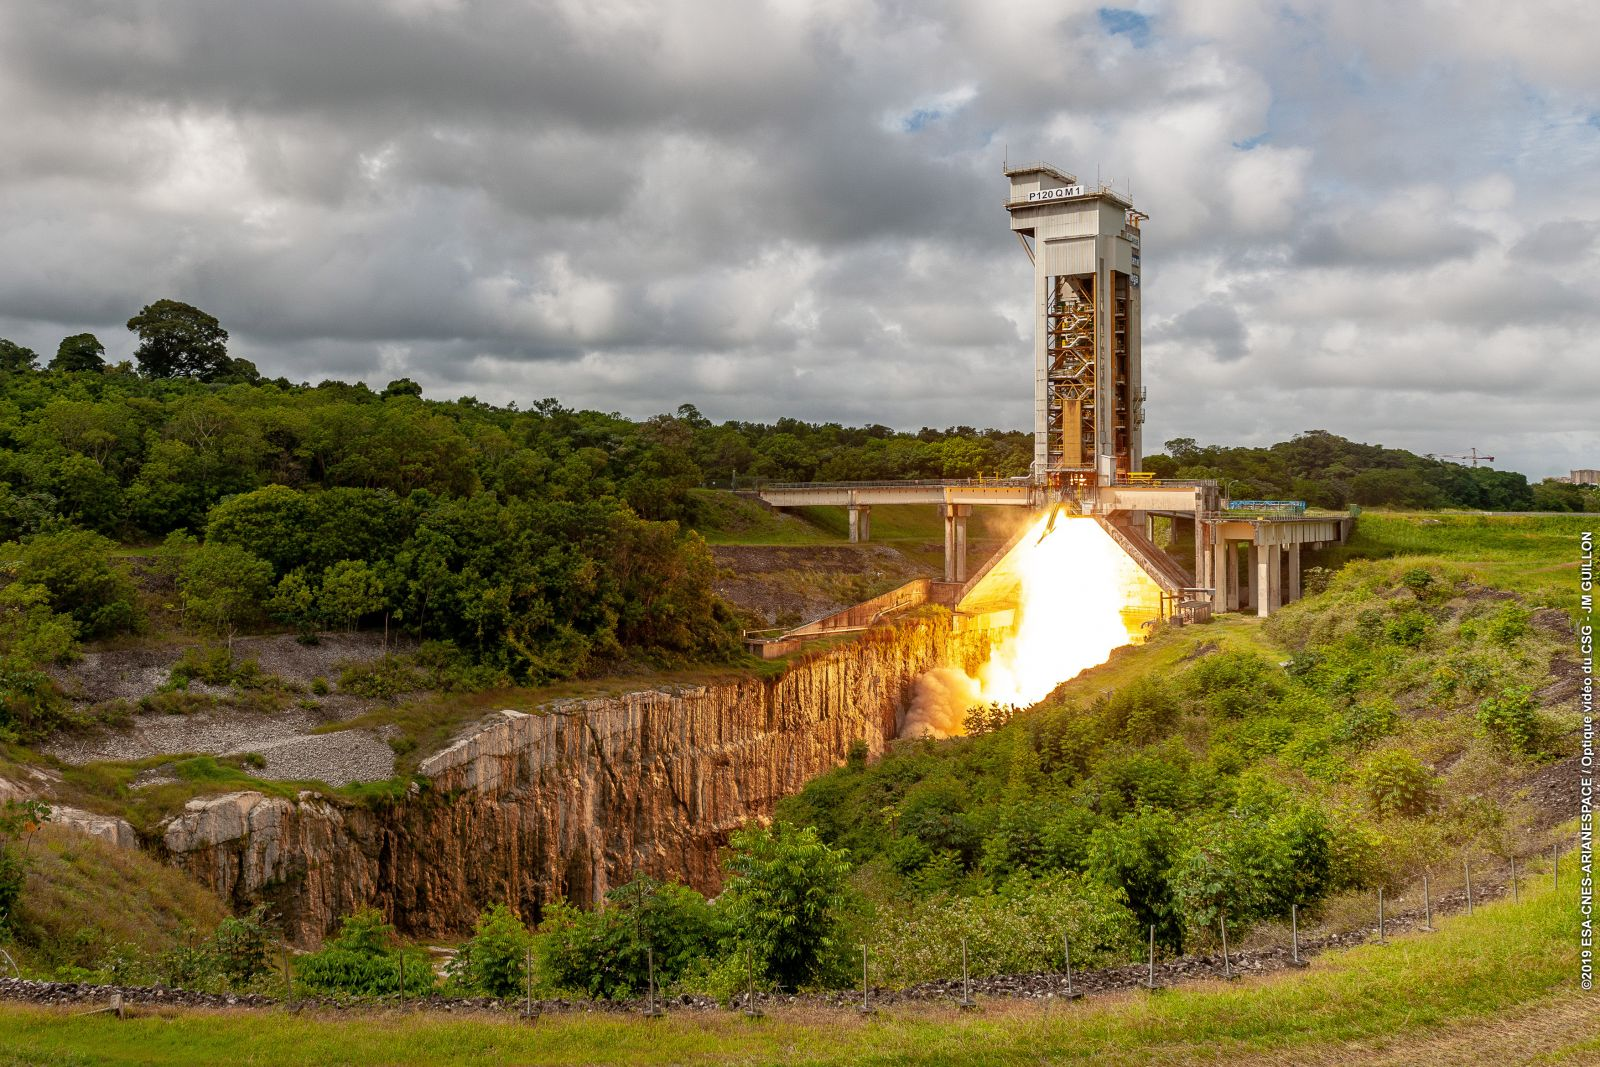 A test article of the P120C rocket motor was tested in French Guiana on Monday, Jan. 28, 2019. Photo Credit: ESA/CNES